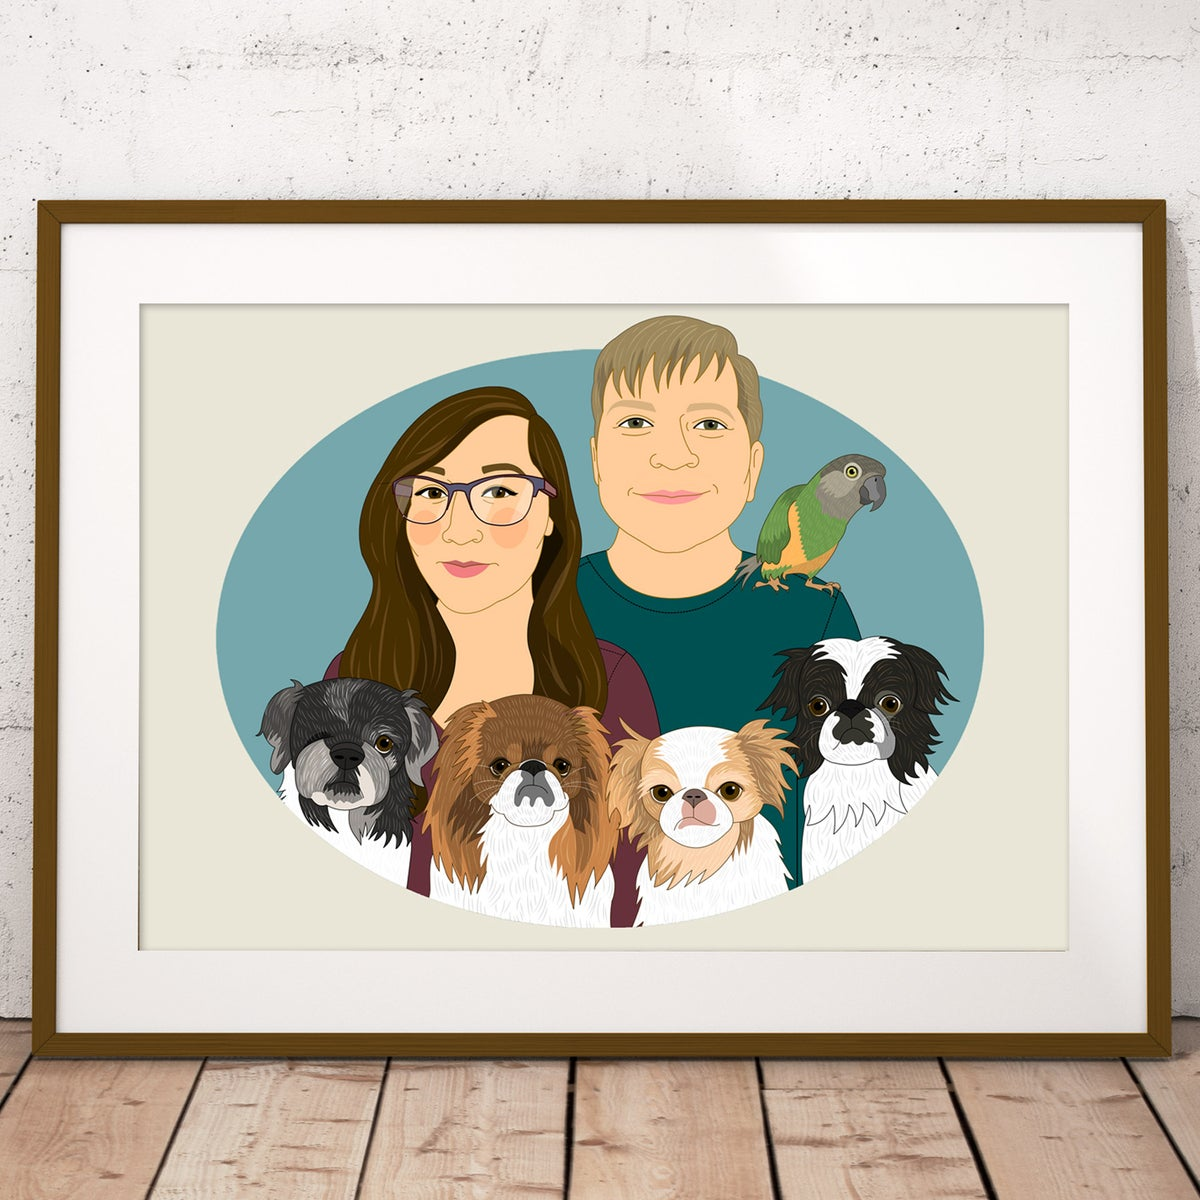 Image of Couple's portrait with 3 or more pets. Portraits from photo.